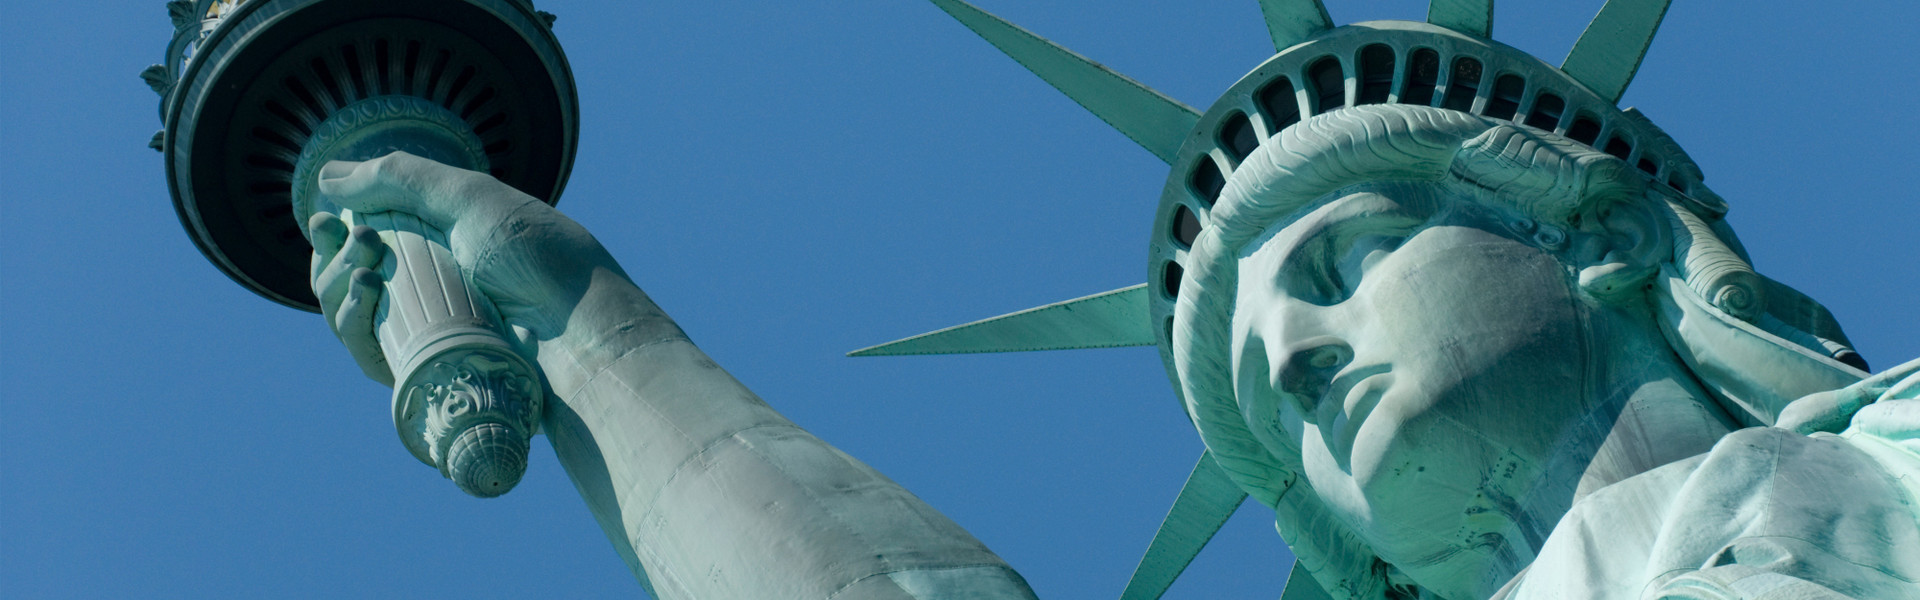 Statue of Liberty Tours   Westgate New York Grand Central